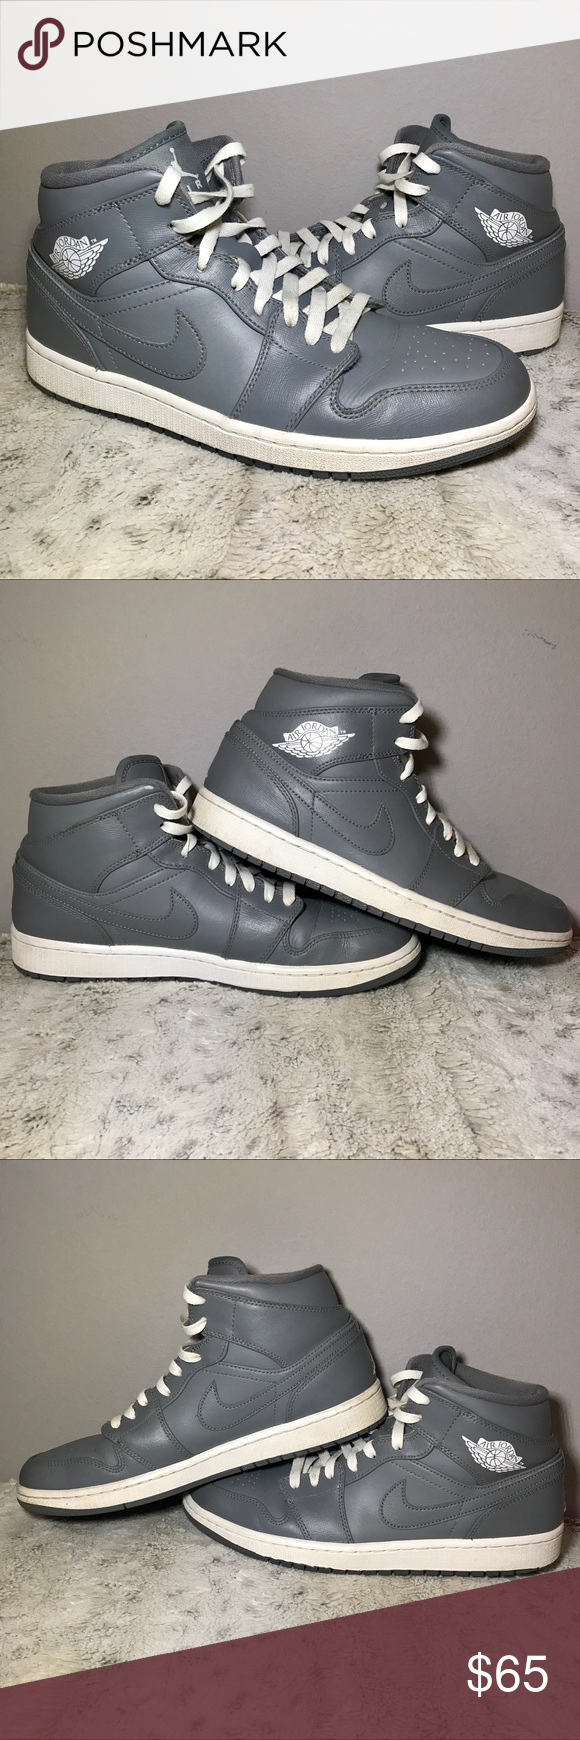 ec32c2f63ea5 🆕Air Jordan 1 Mid Retro size 10 Cool Grey  White 🆕Air Jordan 1 Mid ...